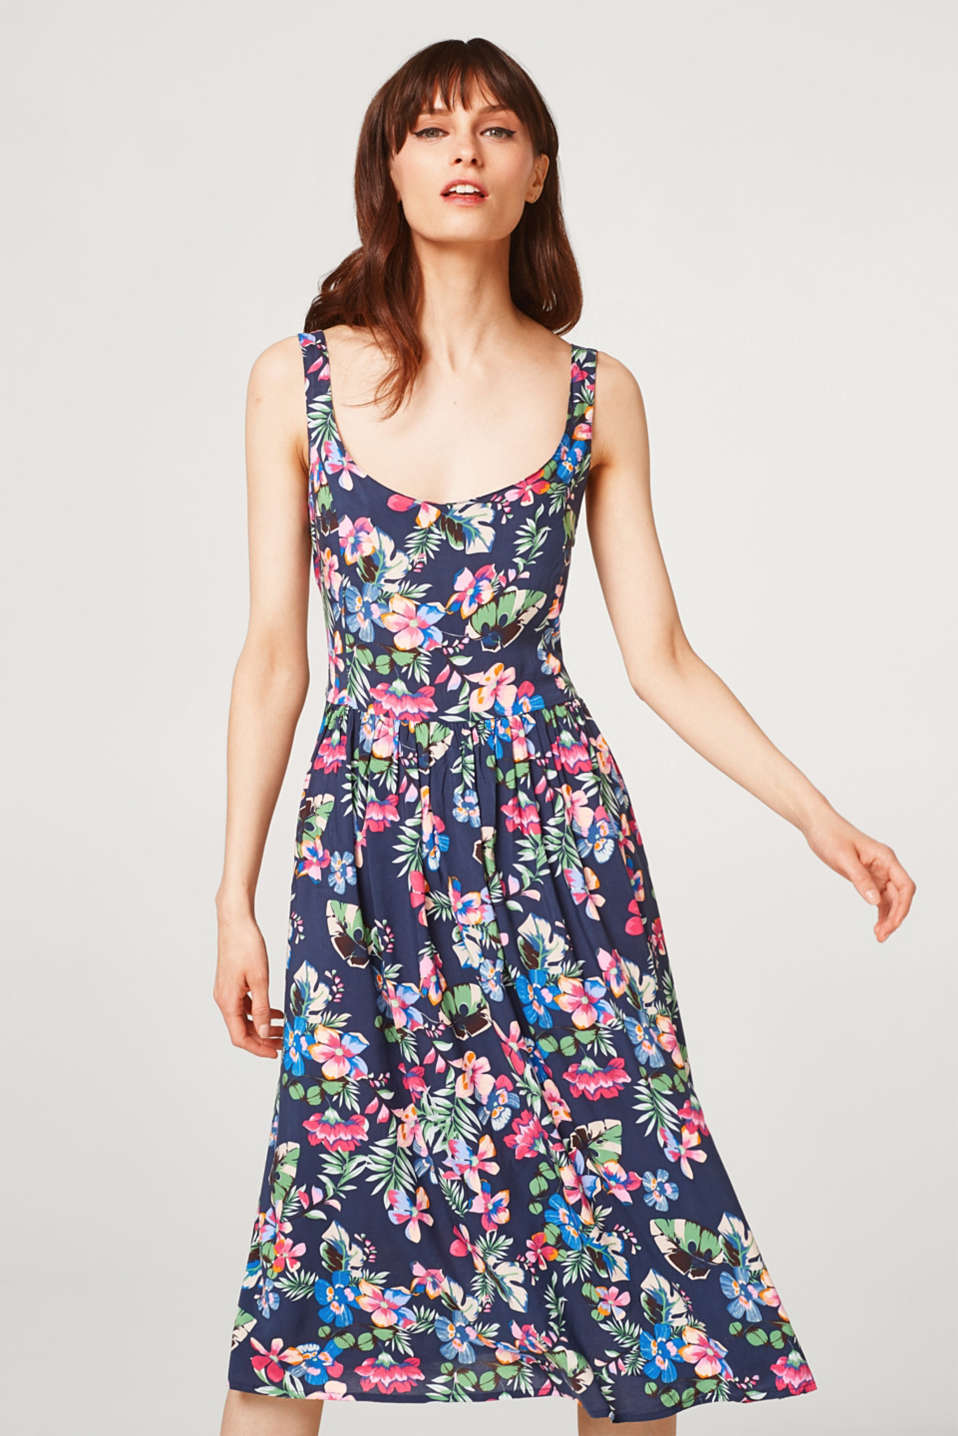 Esprit - Wide swirling dress with a floral print